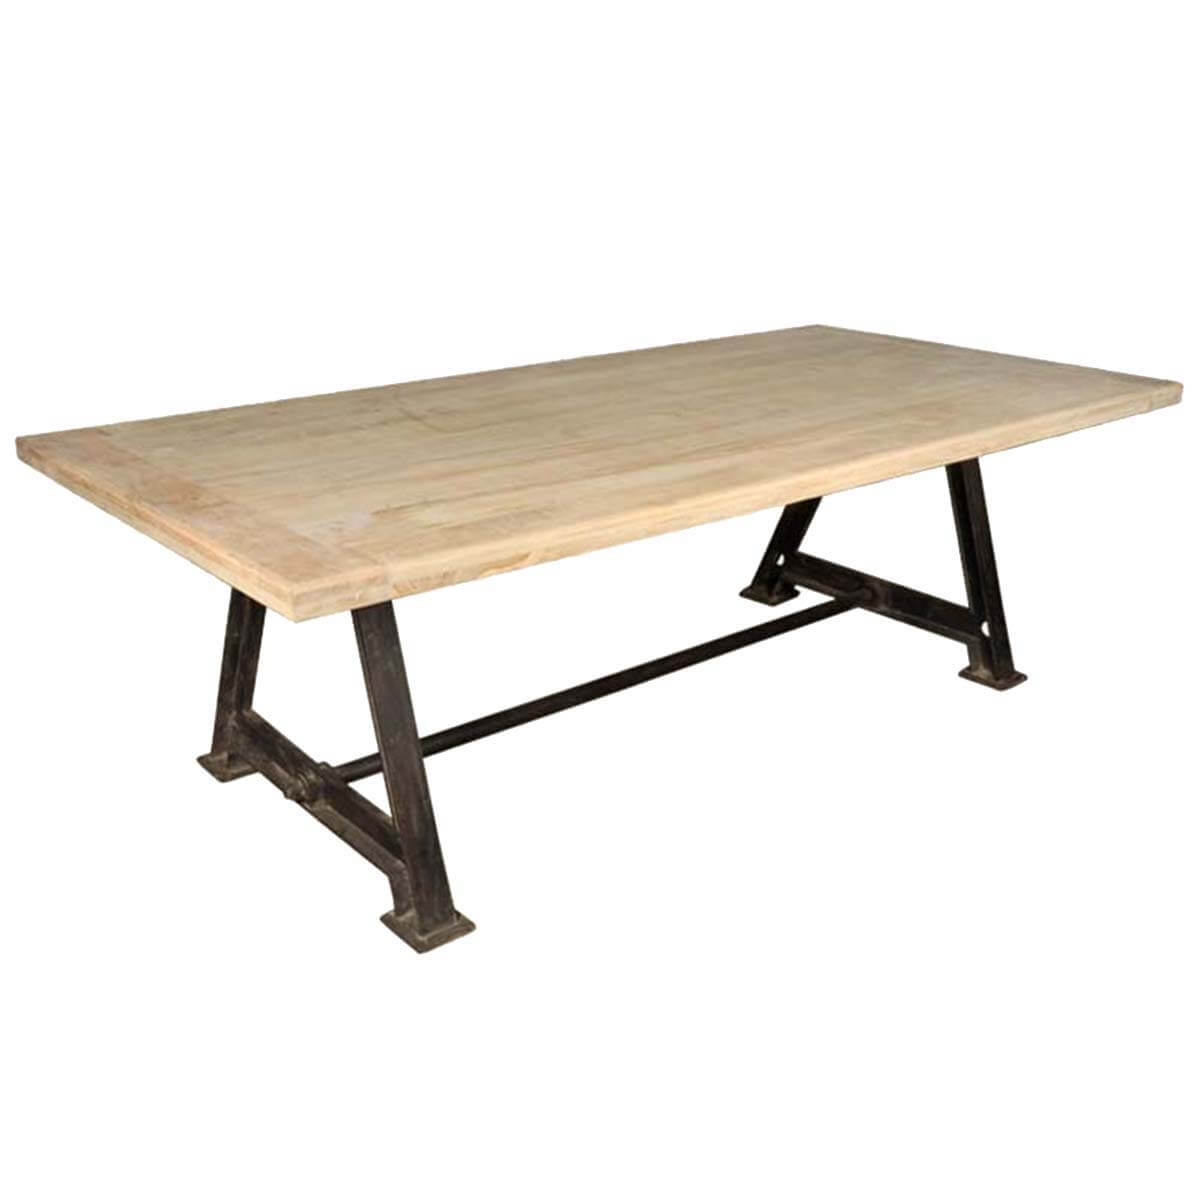 Hankin industrial tropical wood and iron double pedestal for Iron dining table